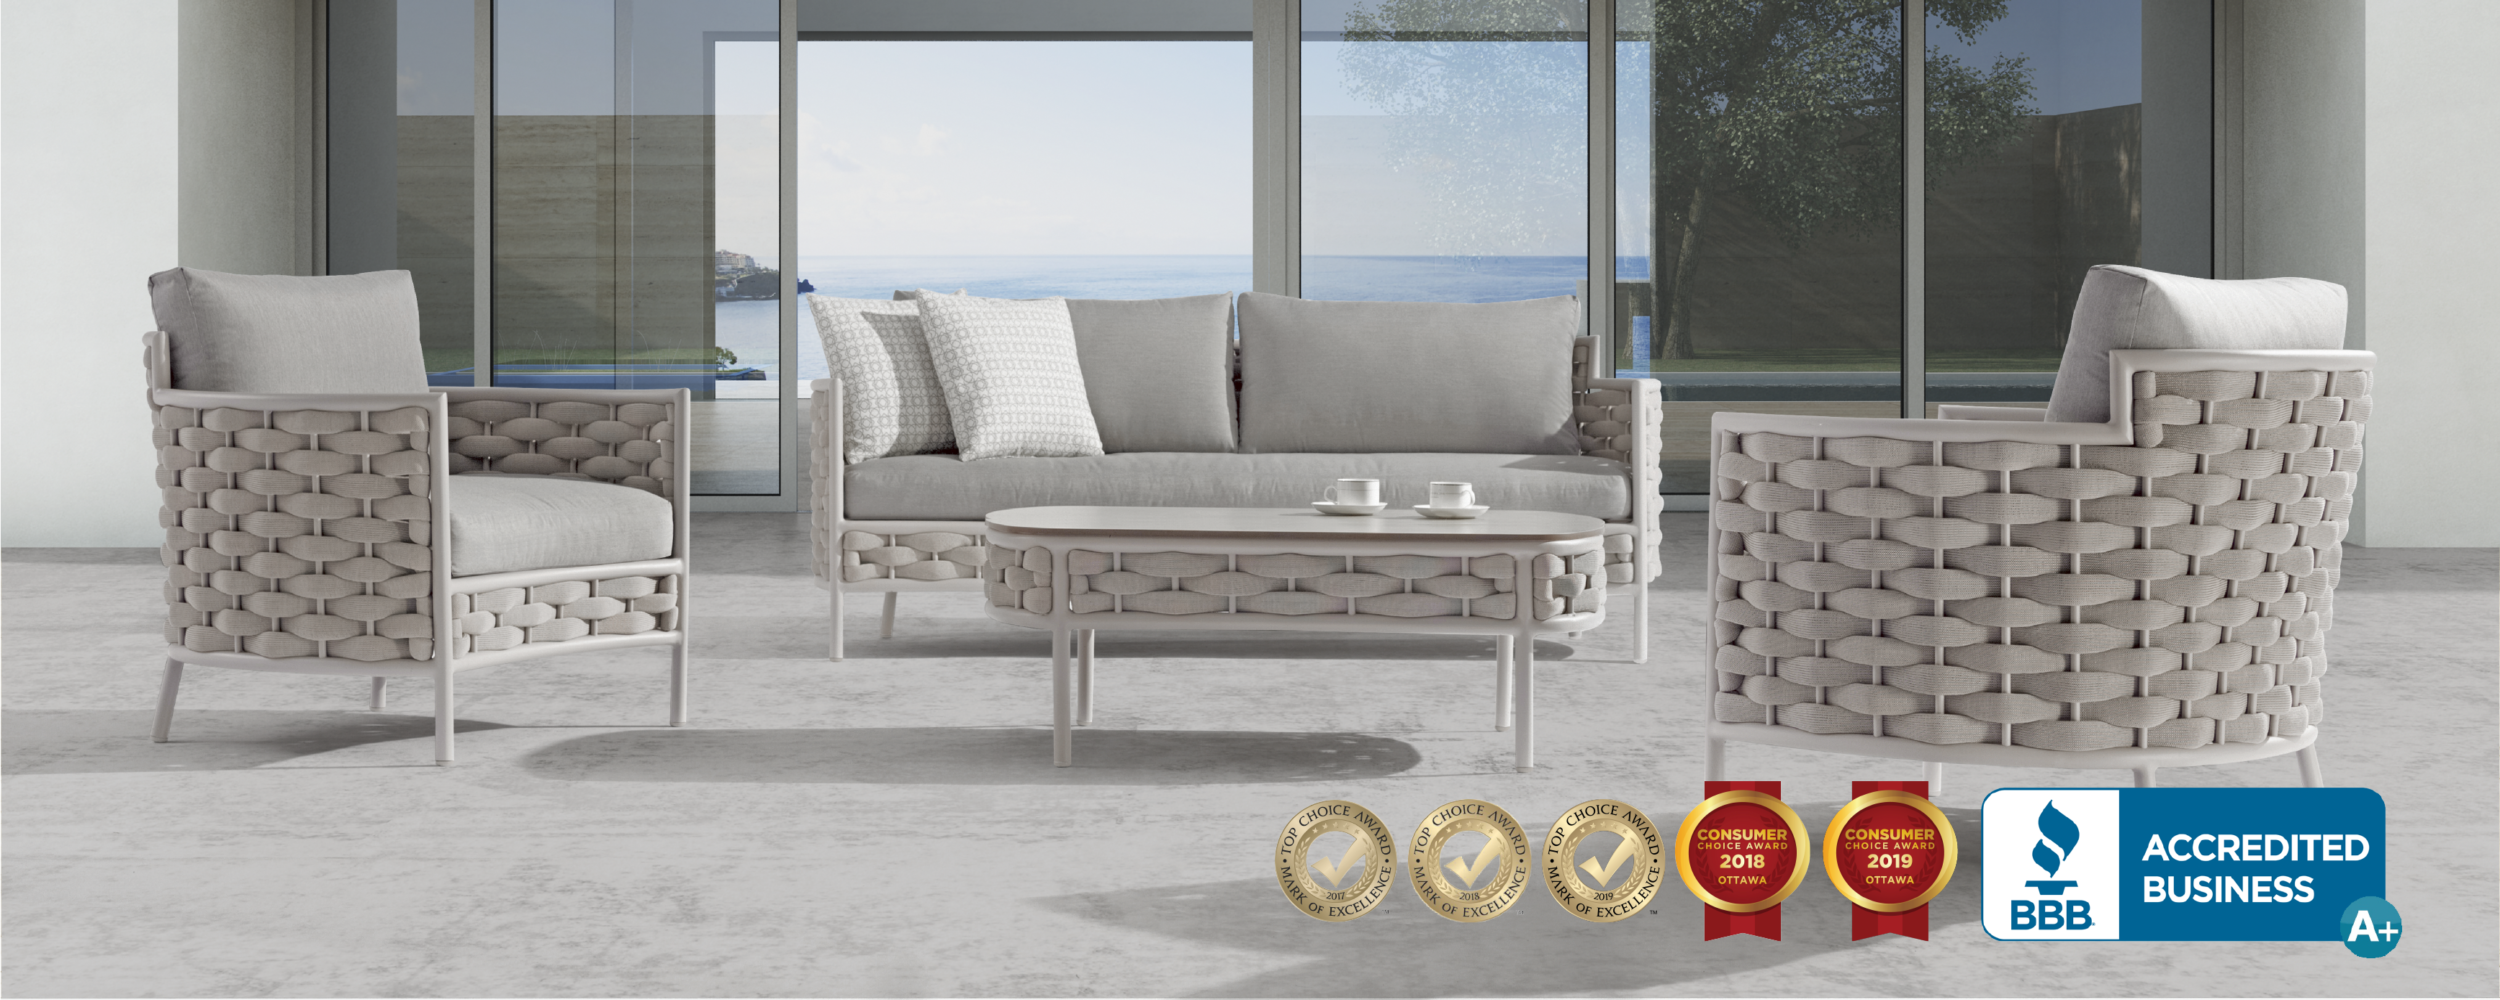 polanco_furniture_store_slider_2019-06